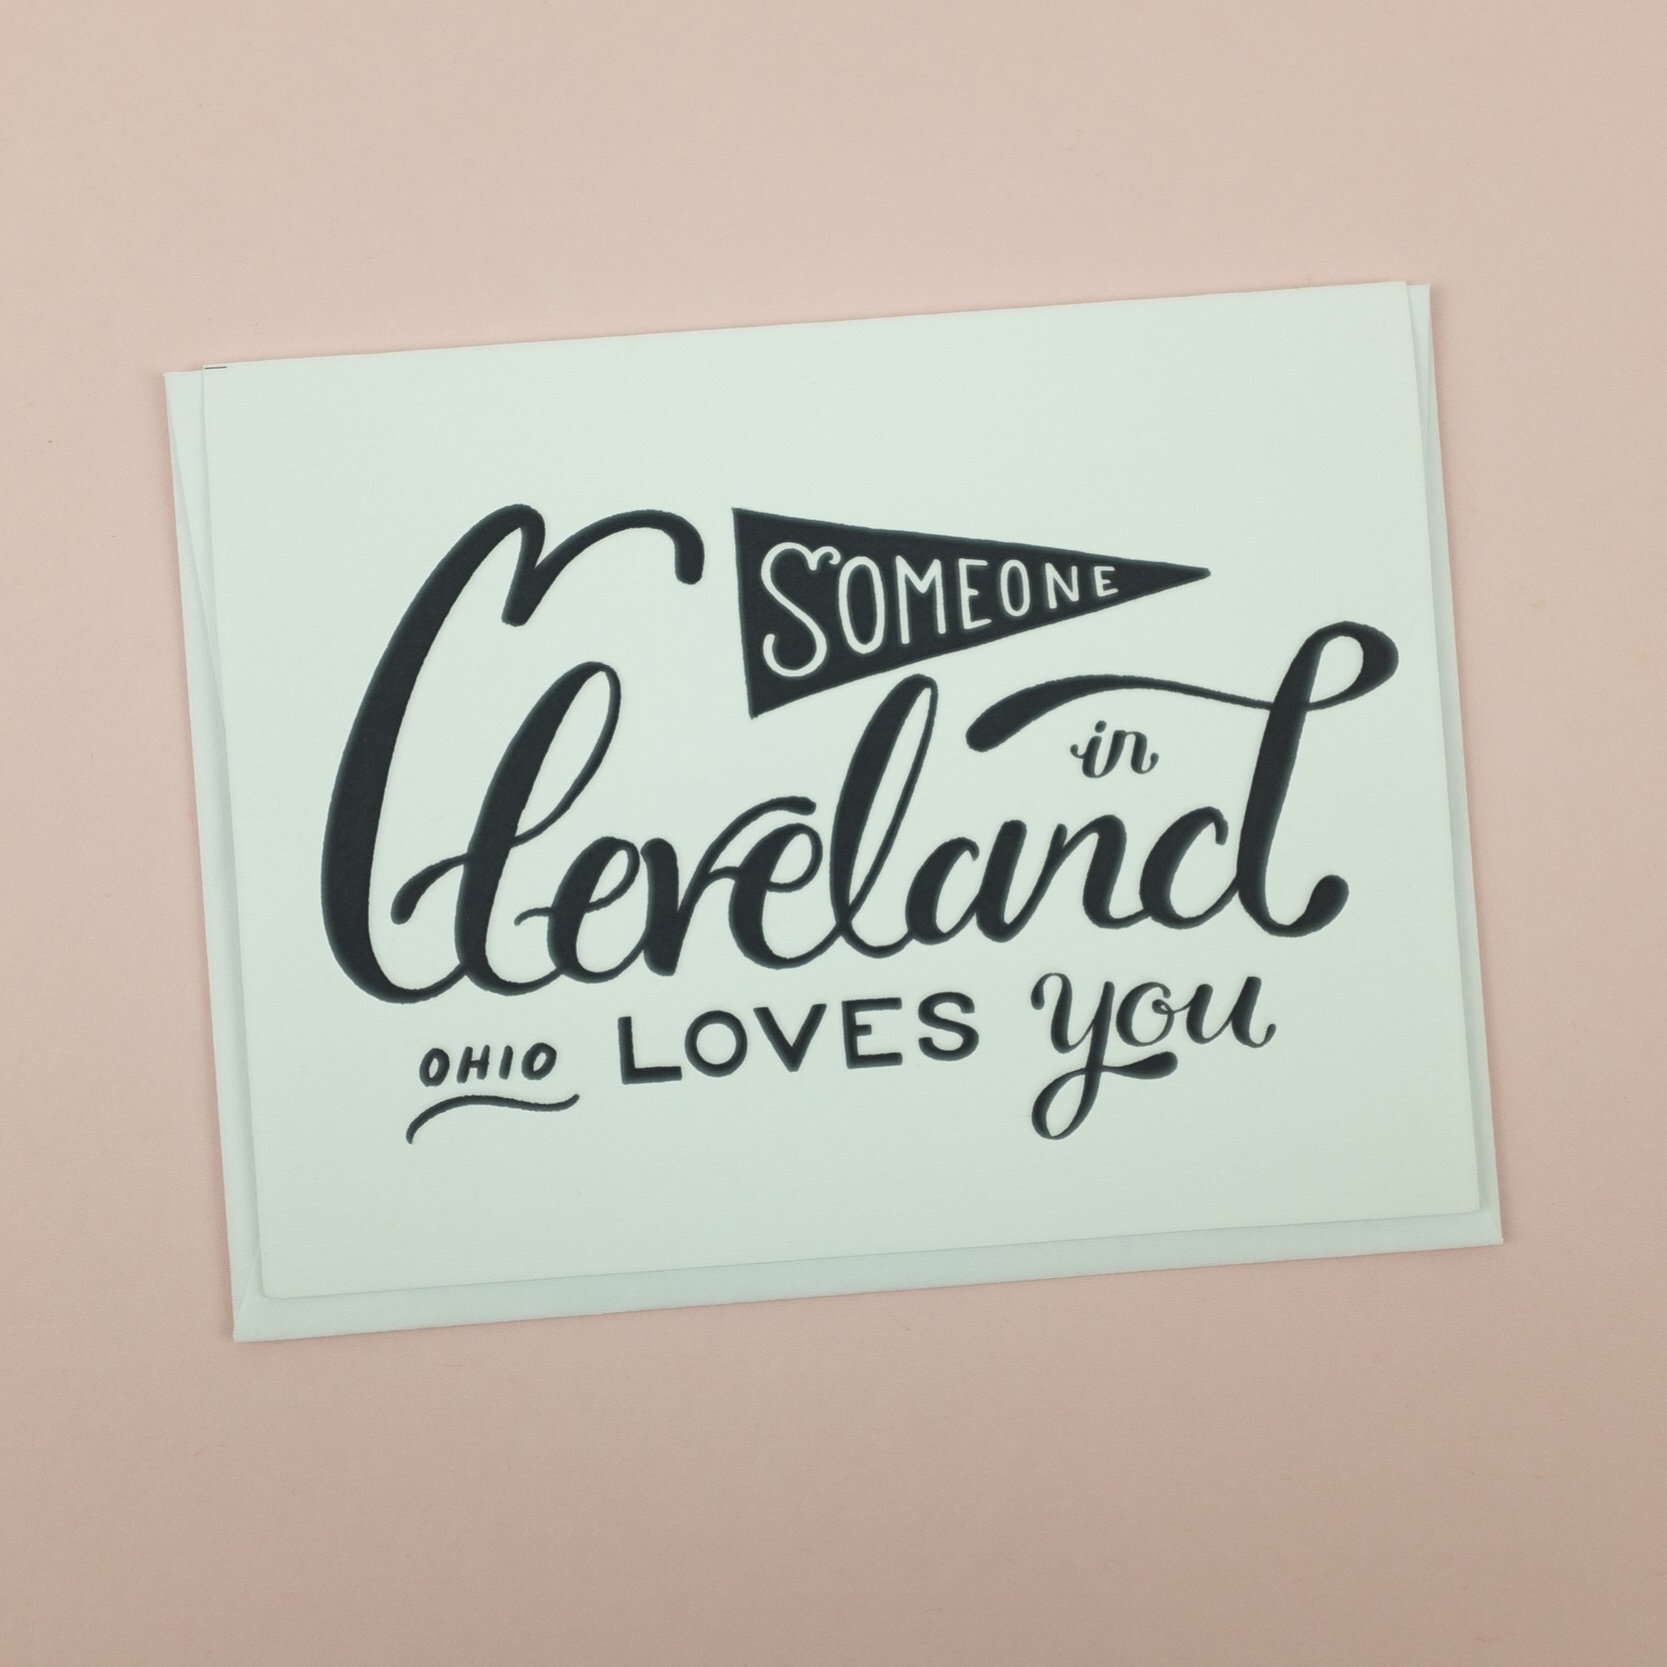 """Someone in Cleveland, Ohio loves you"" greeting card by Boundary & Thorn"